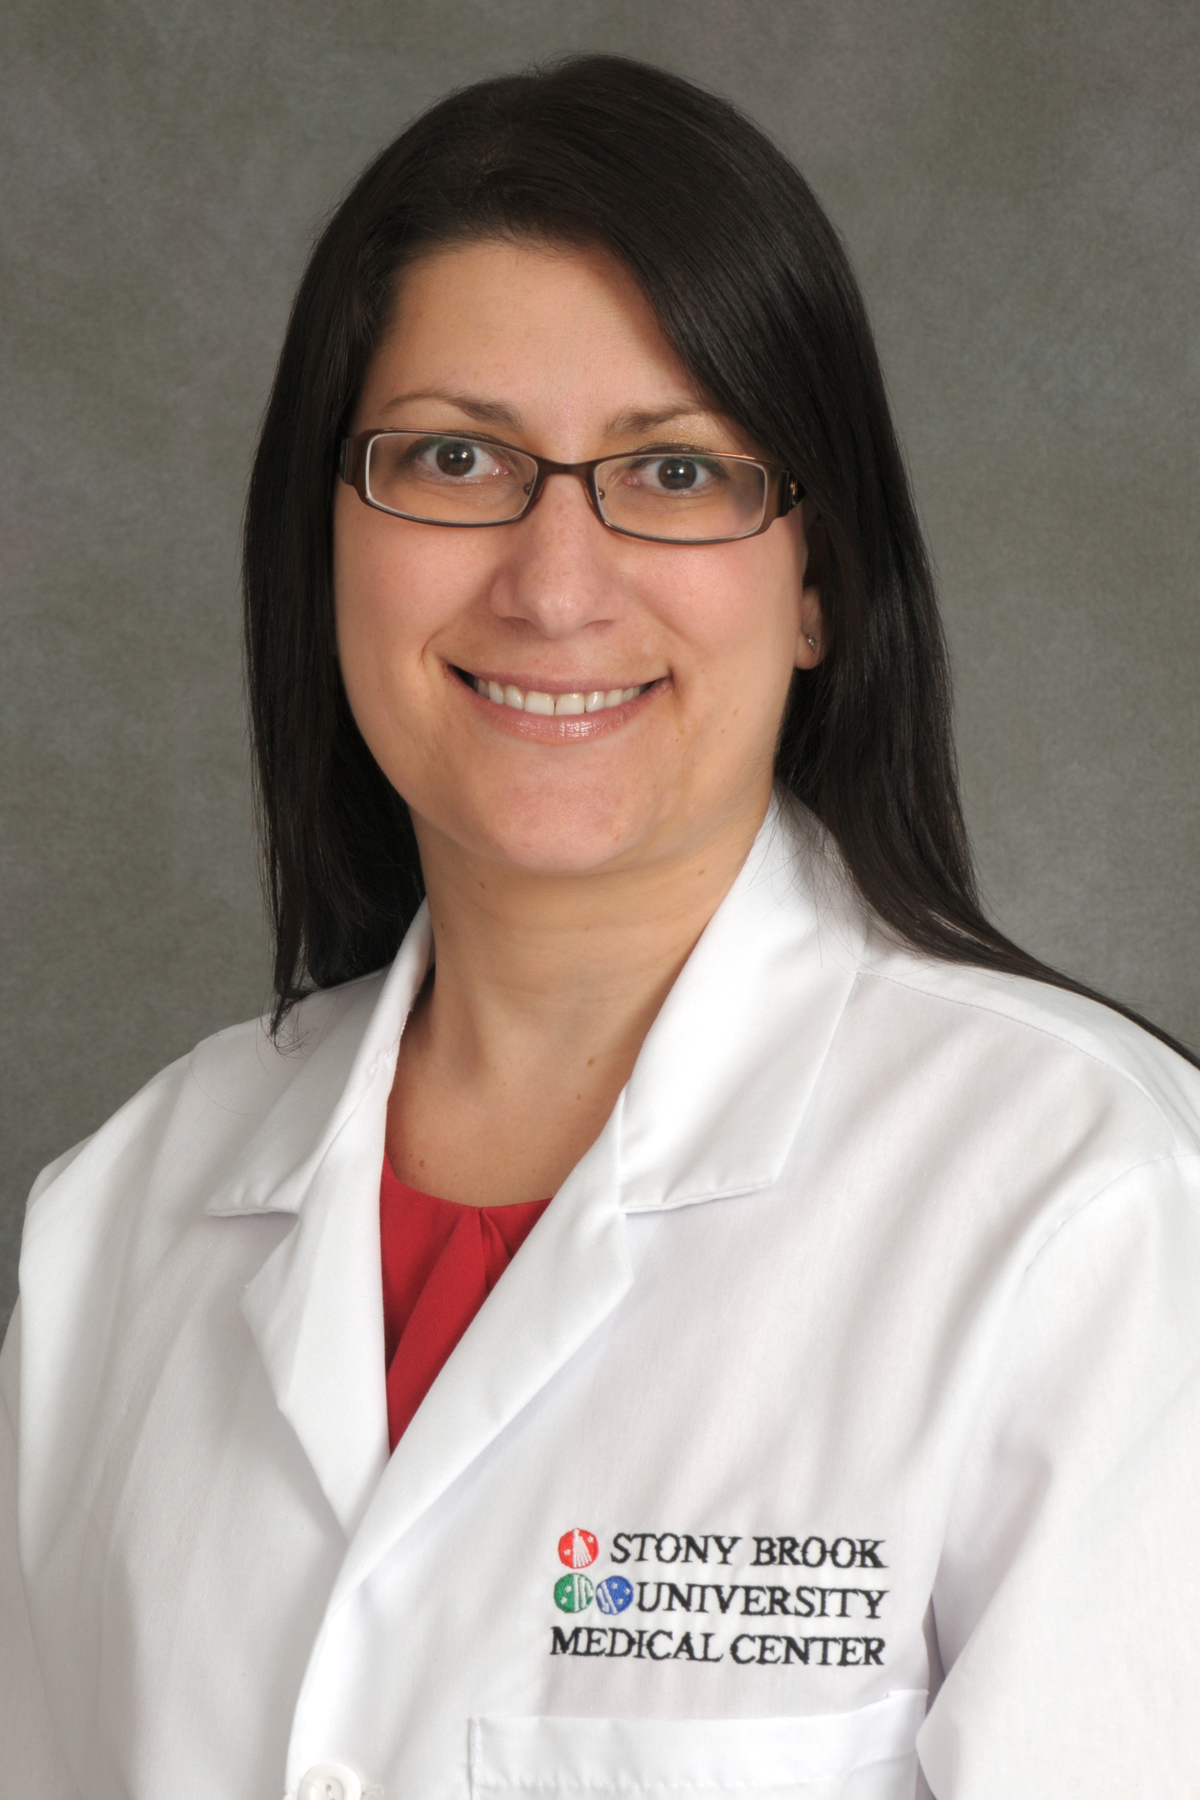 Pediatric Diabetes Specialist Joins Stony Brook Children's